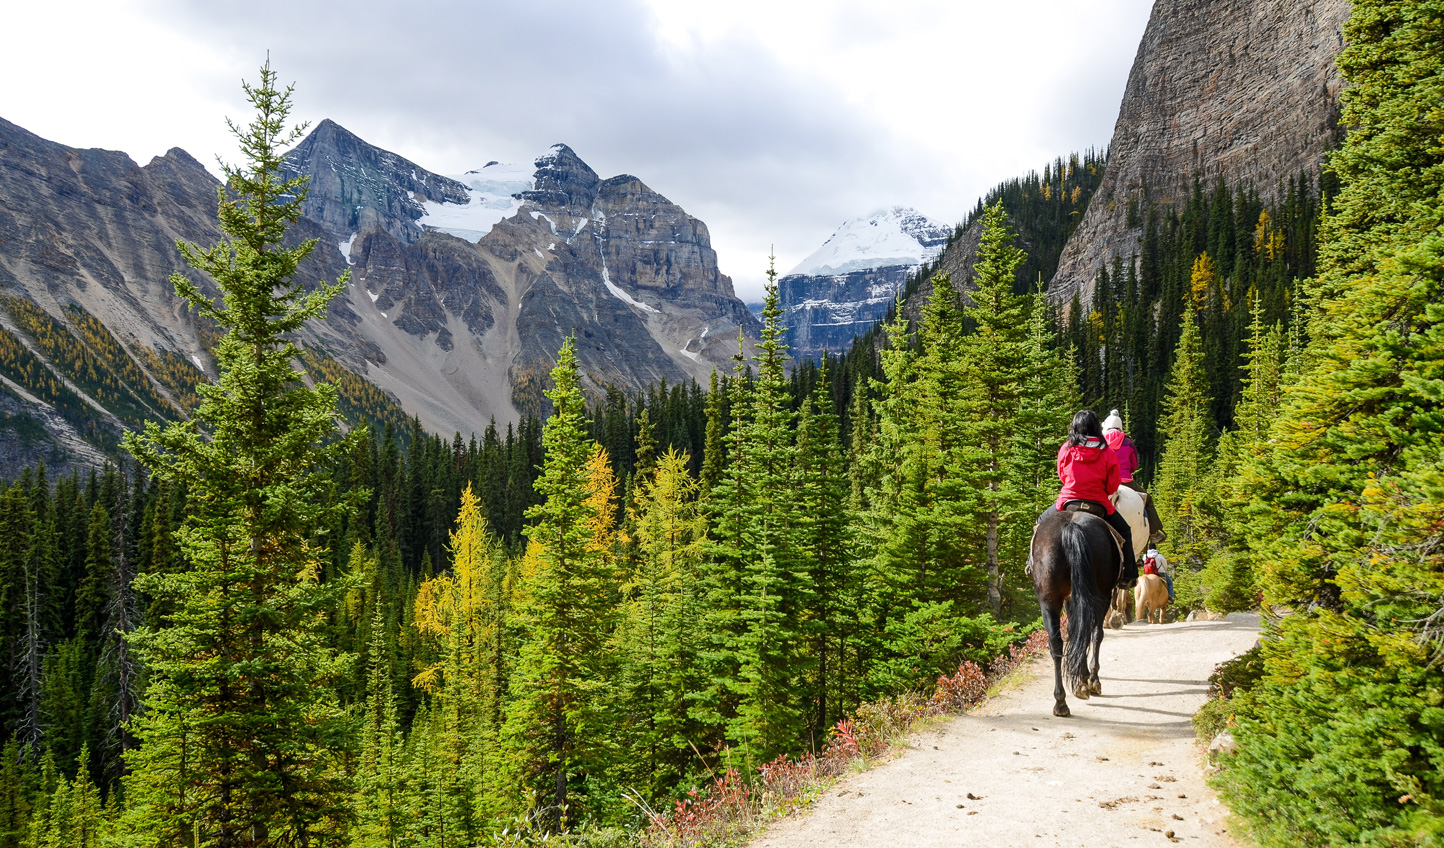 Saddle up and head out to explore